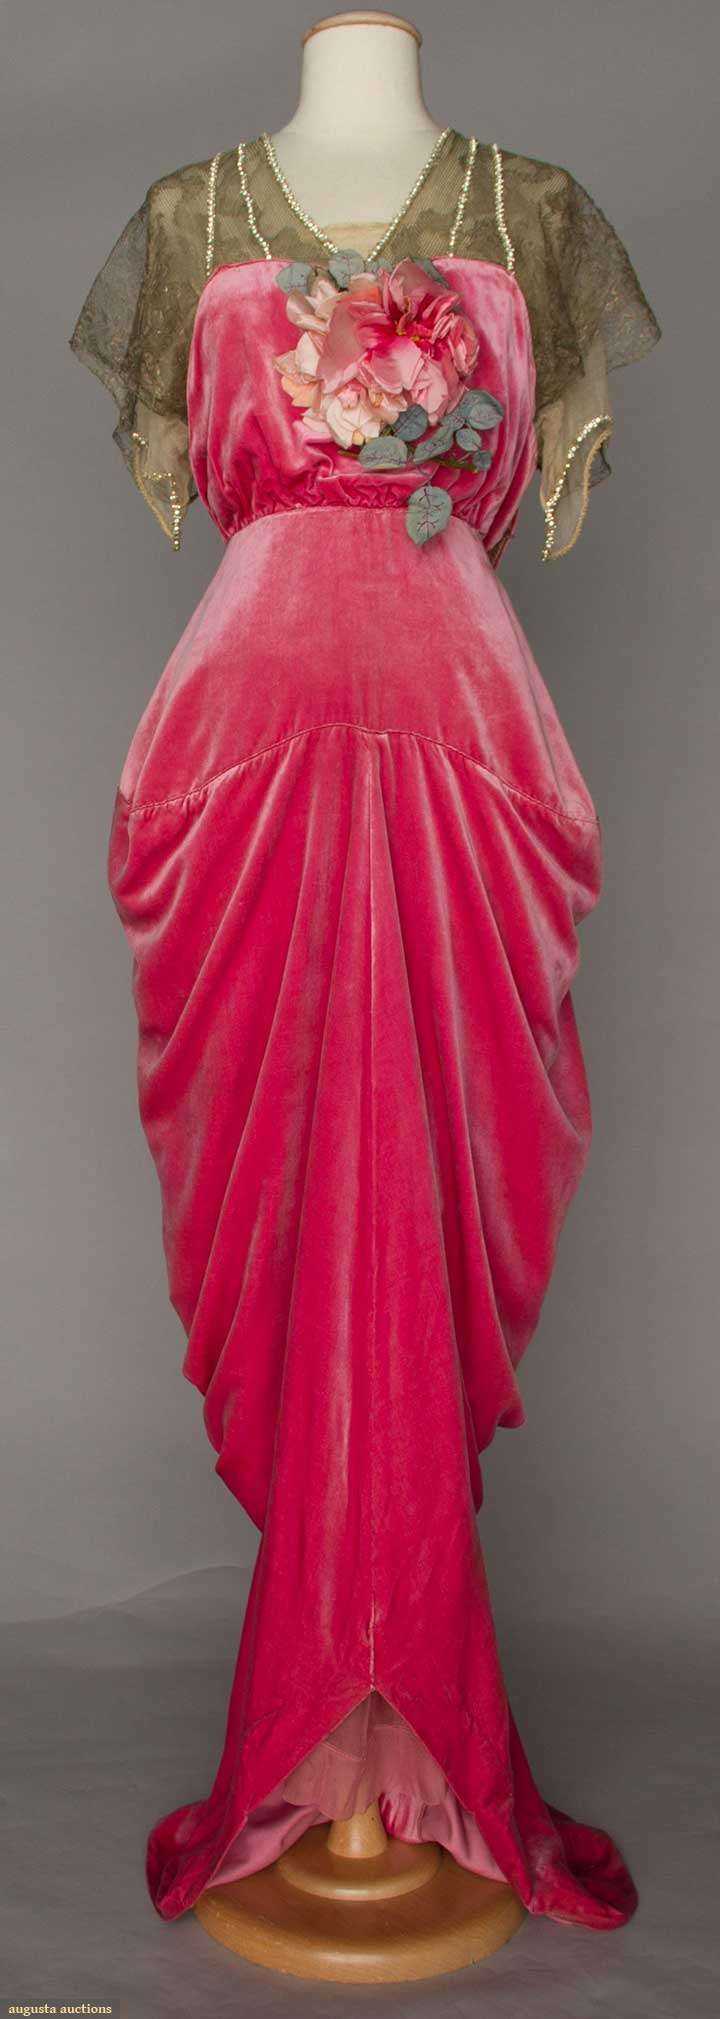 Gown (image 1) | Robert | France; Paris | 1910-1914 | silk velvet, chiffon, lace | Augusta Auctions | April 20, 2016/Lot 222